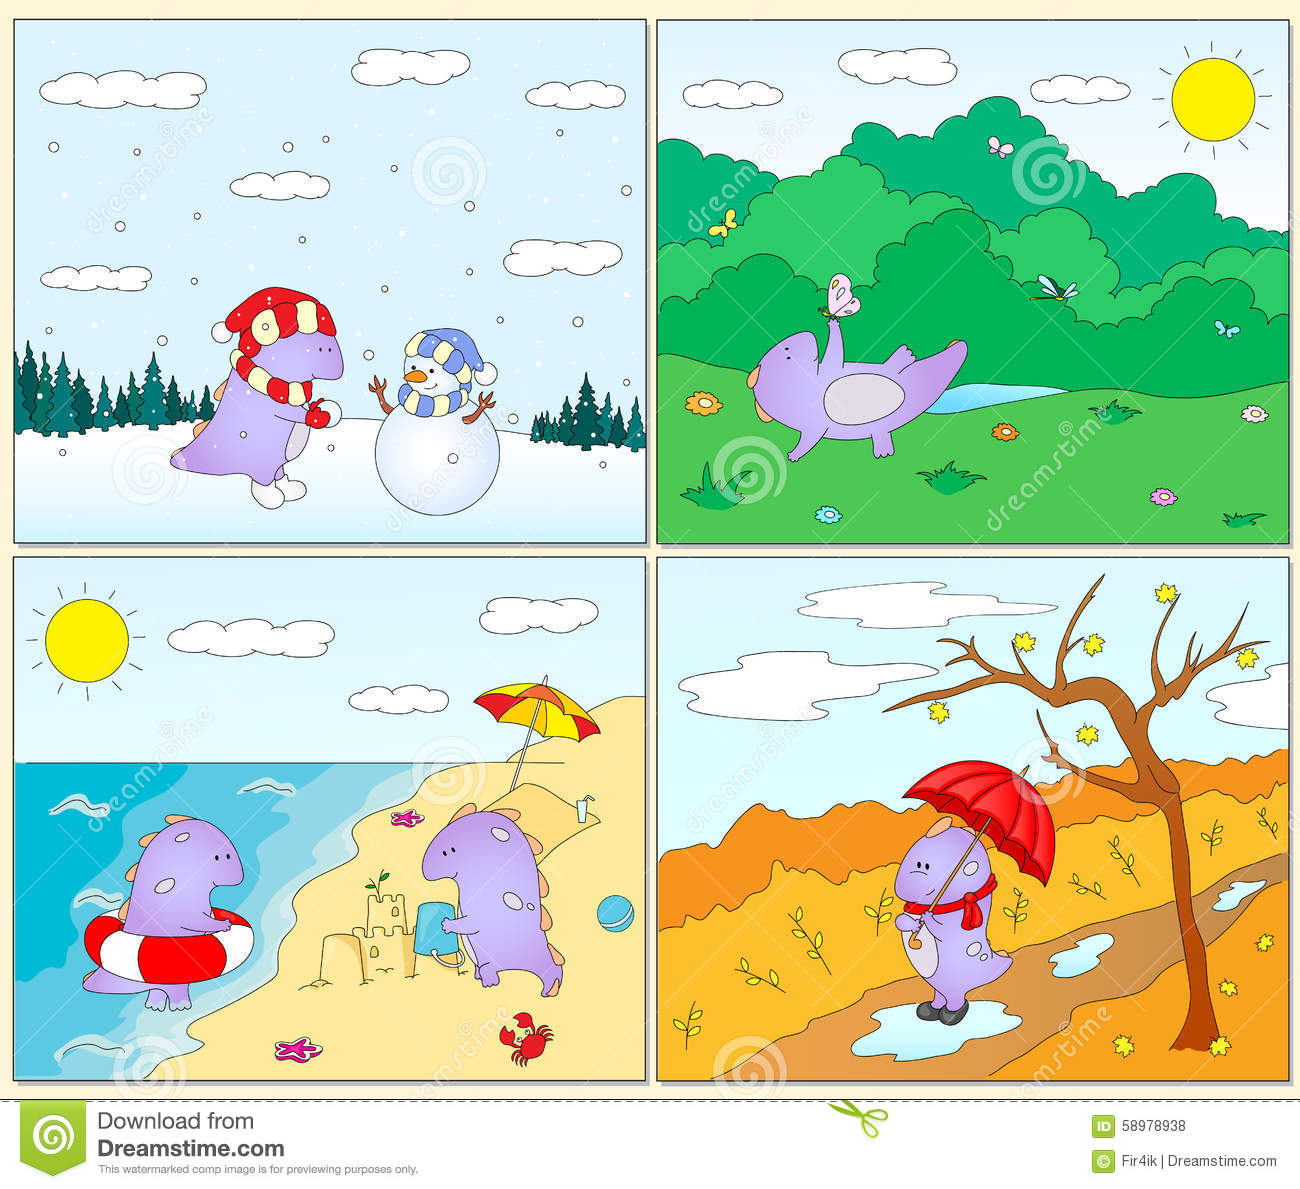 The four seasons of the year worksheets for preschools | 1189x1300